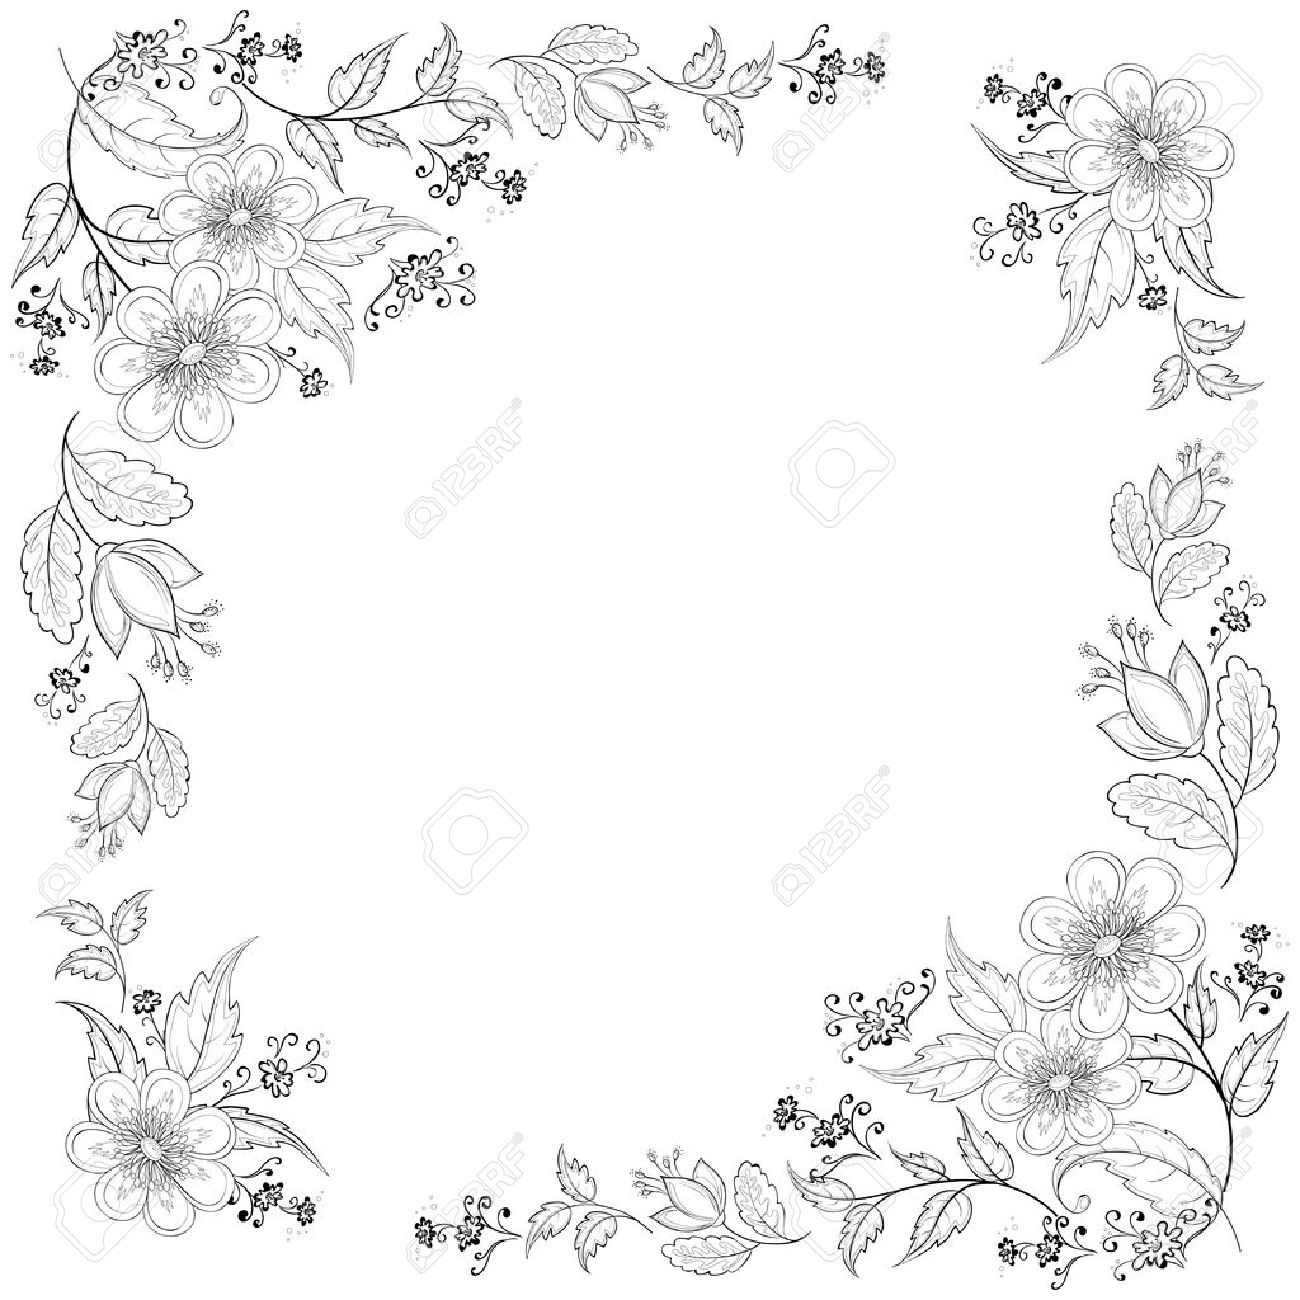 Vector, abstract background with a symbolical flowers, monochrome contours Stock Vector - 10229760